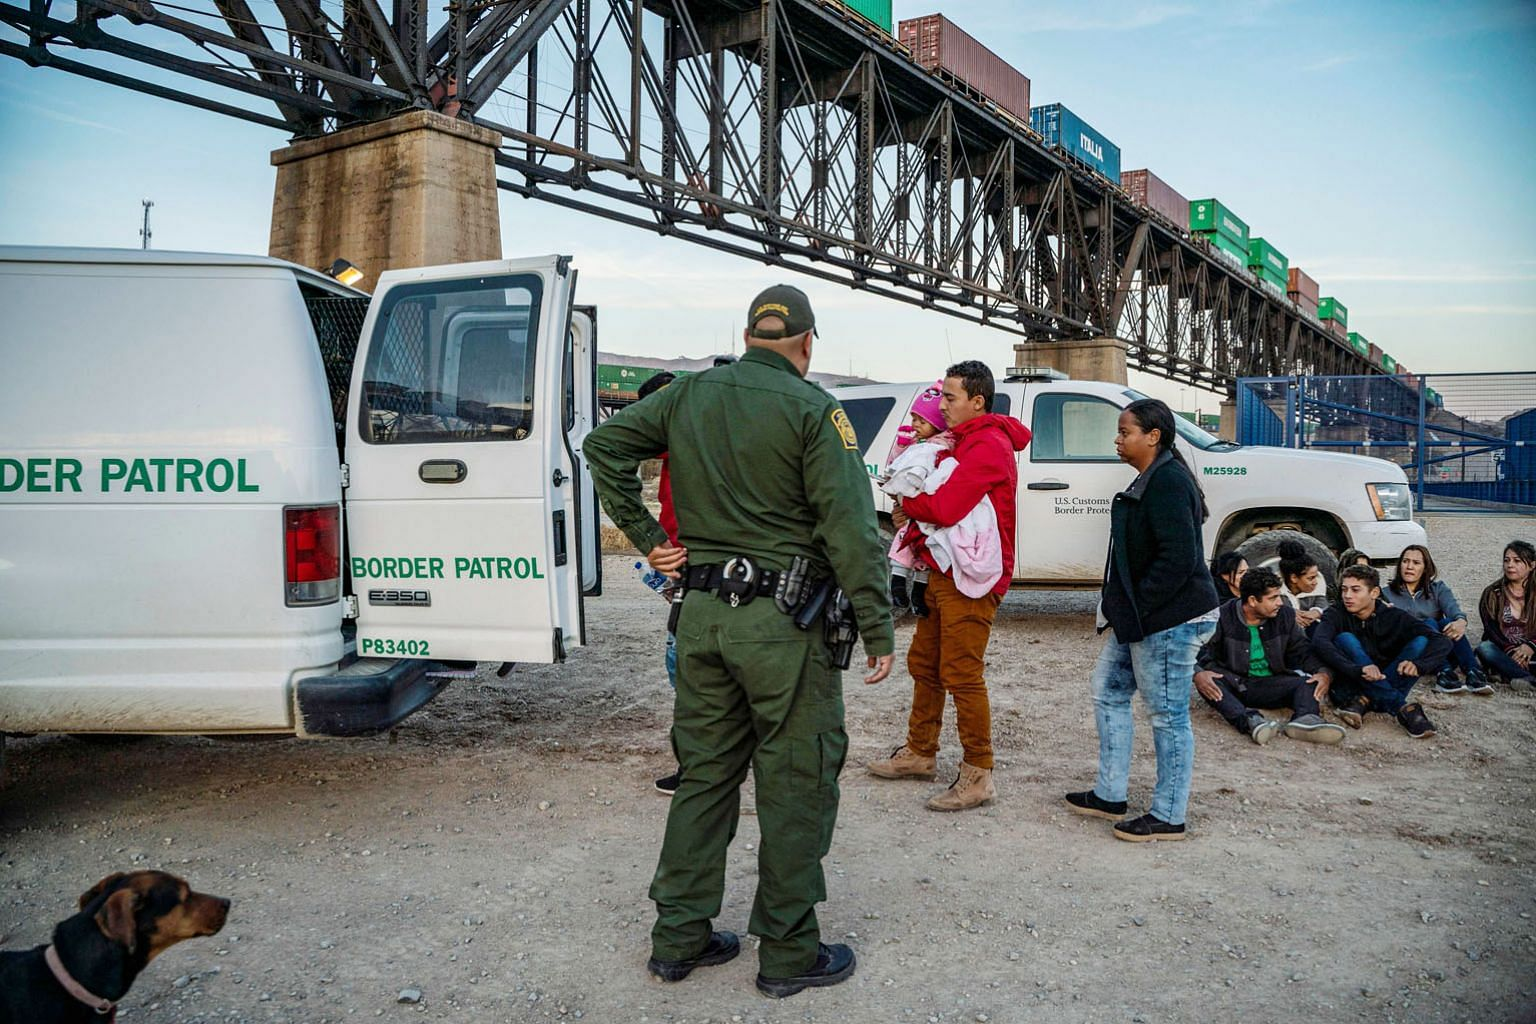 A group of Brazilian migrants getting into a US Border Patrol van after having just crossed the US-Mexico border last month. US President Donald Trump does not need to fix the immigration problem; he just needs voters to have it at the front of their